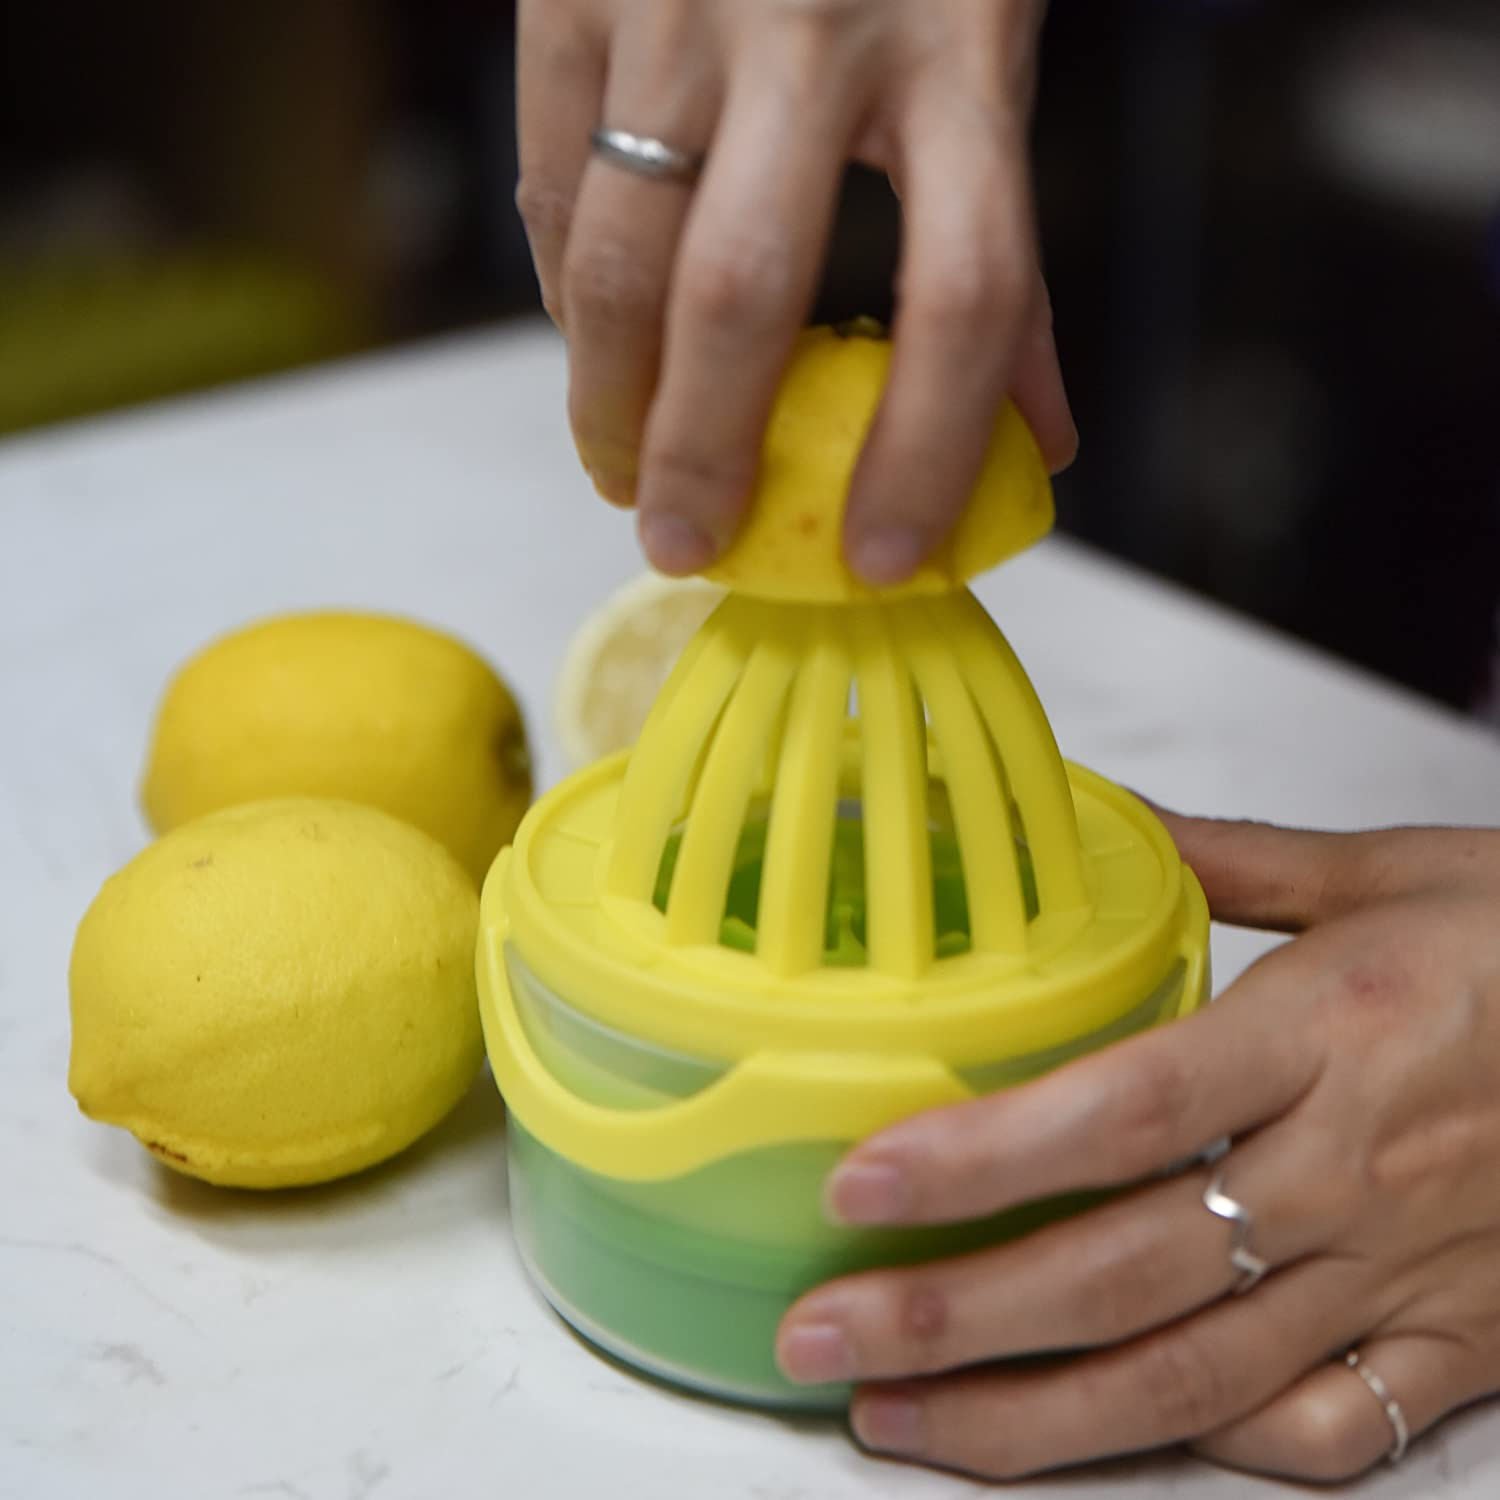 2 in 1 Manual Lemon Juicerwith Silicone Icy Tray /Measuring Cup, Multifunctional Kitchen Tools - Yellow